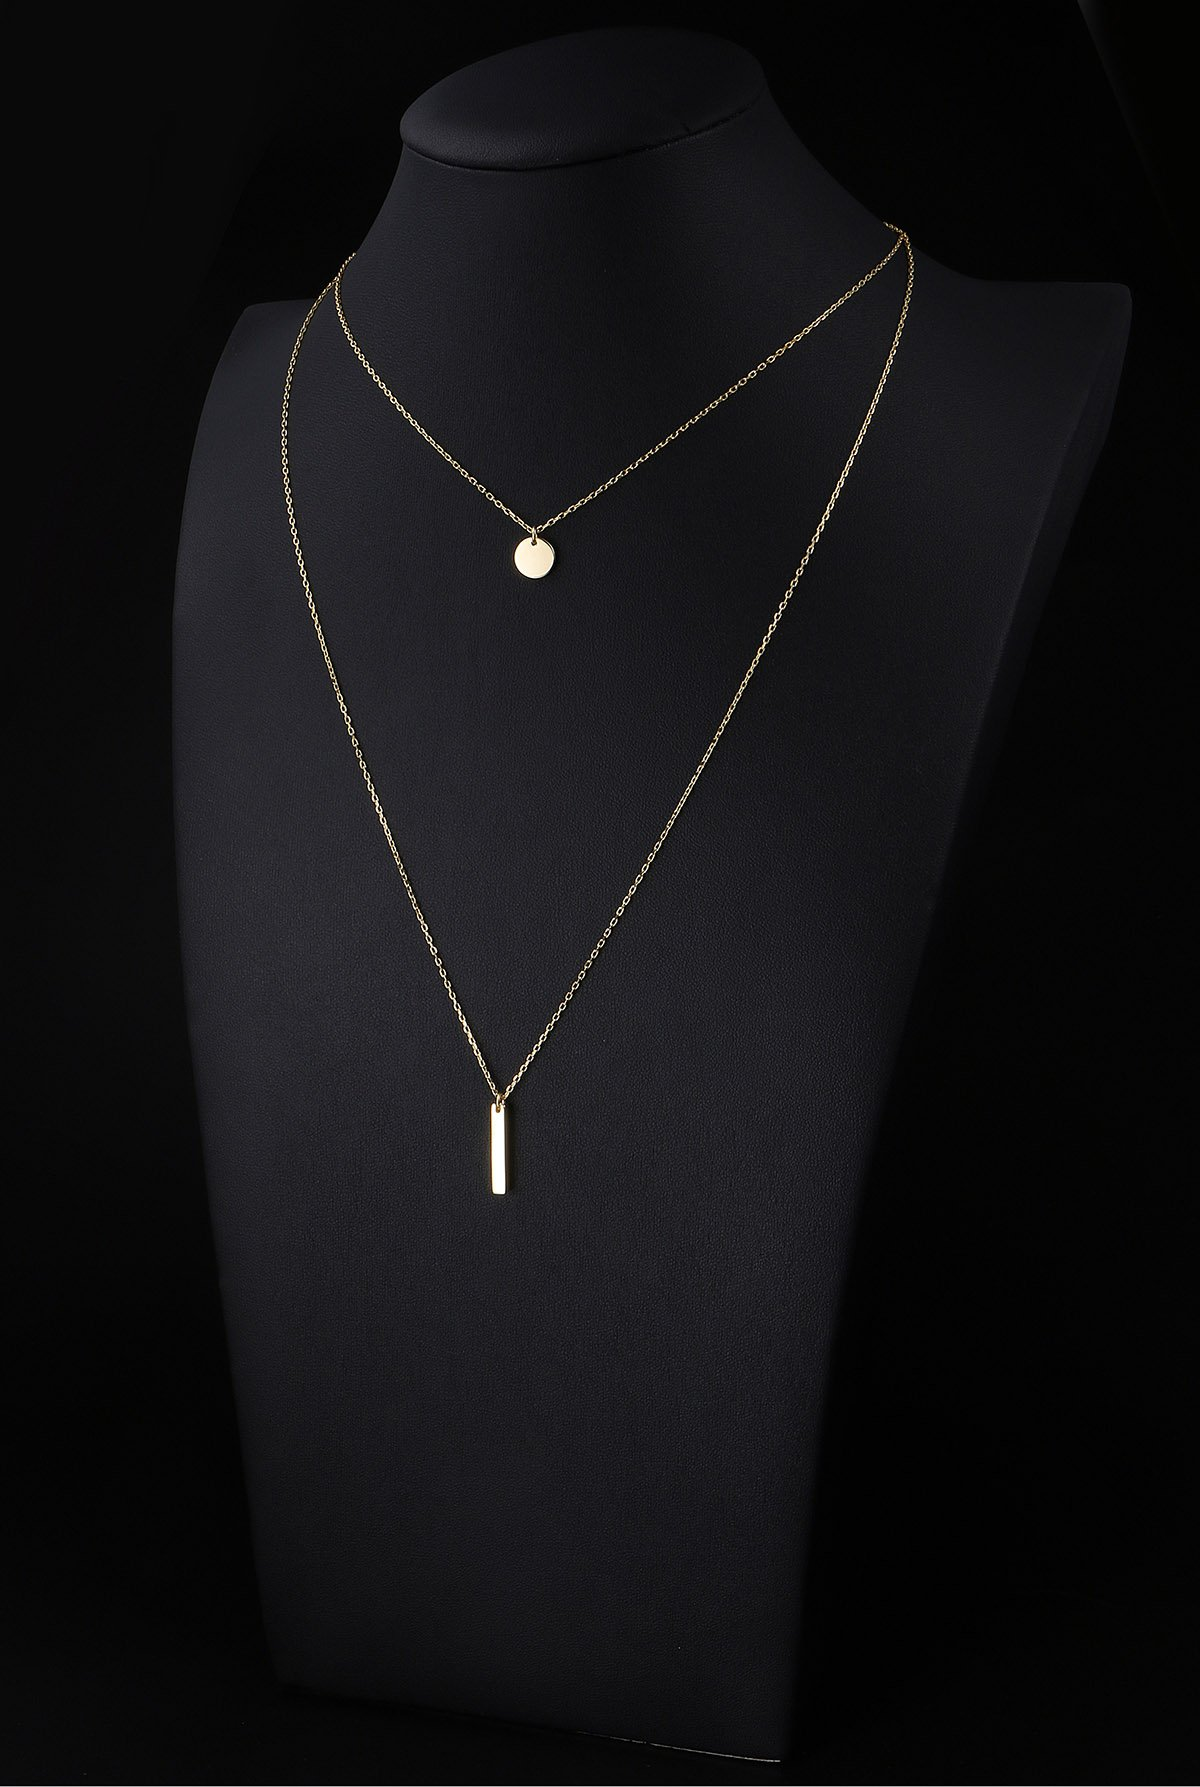 925S Sterling Silver Bar Dot Double Layered Long Chain Choker Y Necklace Women Lady Golden by SILVER MOUNTAIN (Image #2)